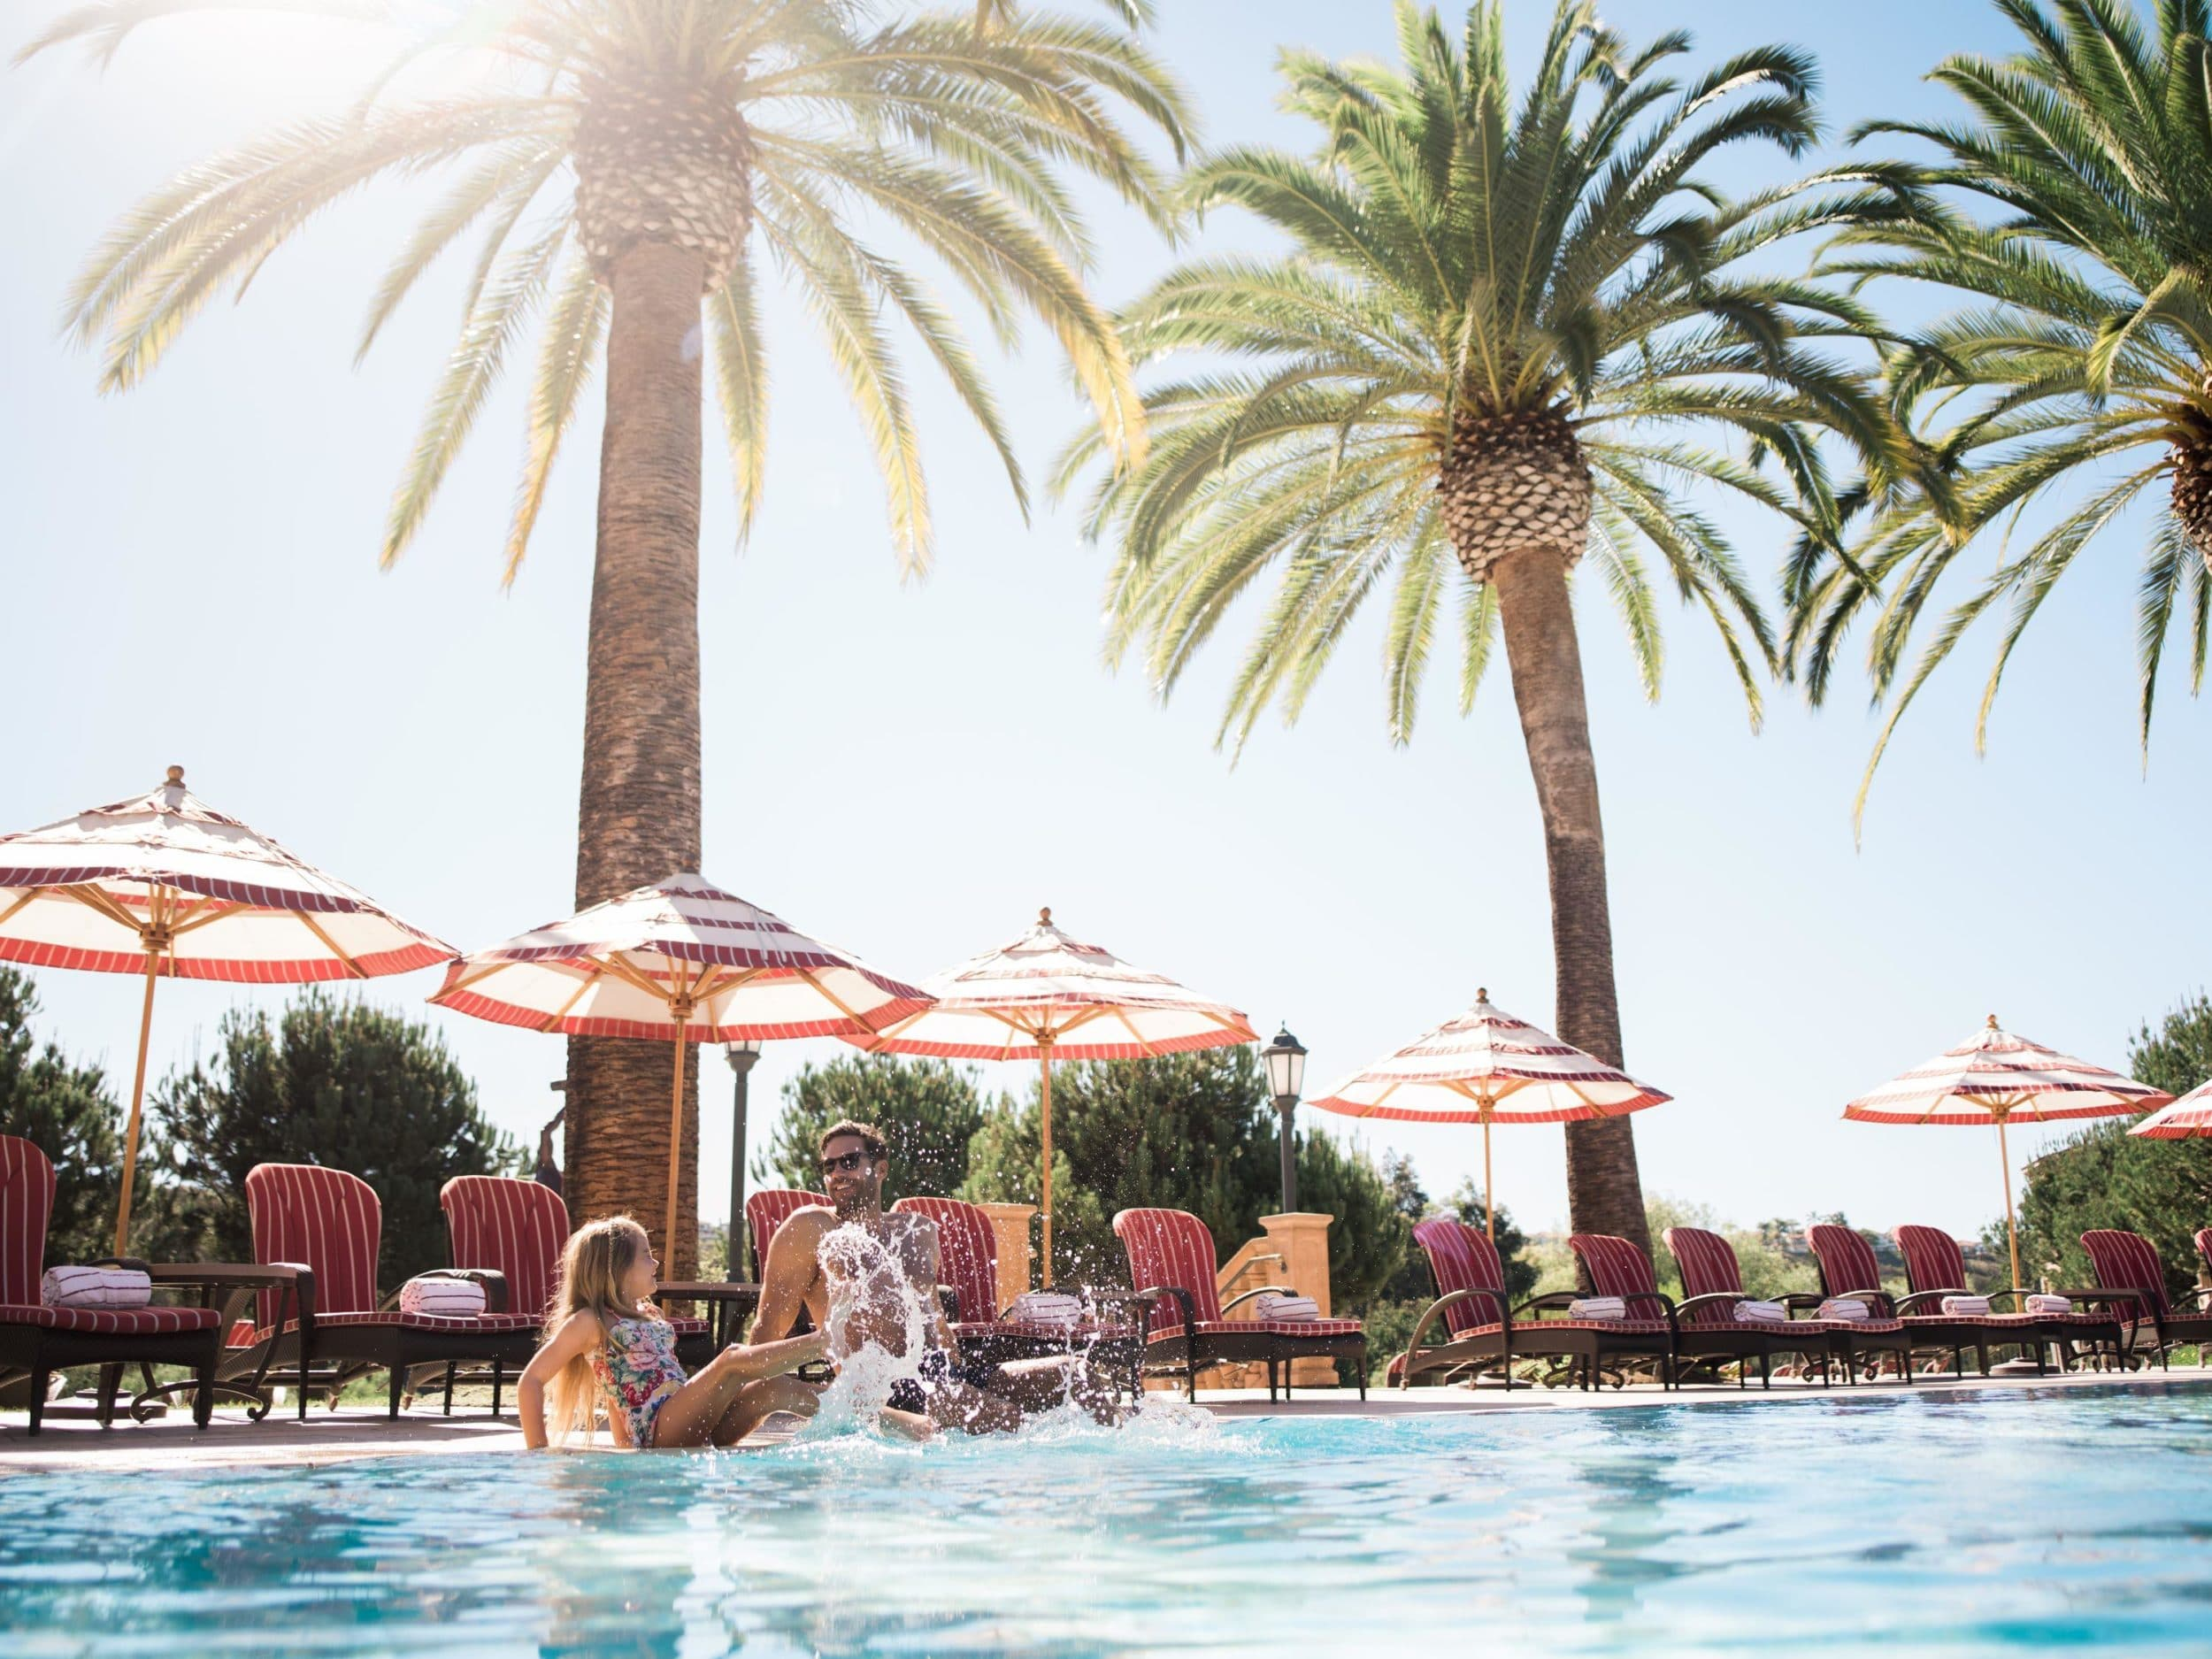 A girl splashes in the main swimming pool with her father at Fairmont Grand Del Mar, my top pick for kid-friendly hotels in San Diego.